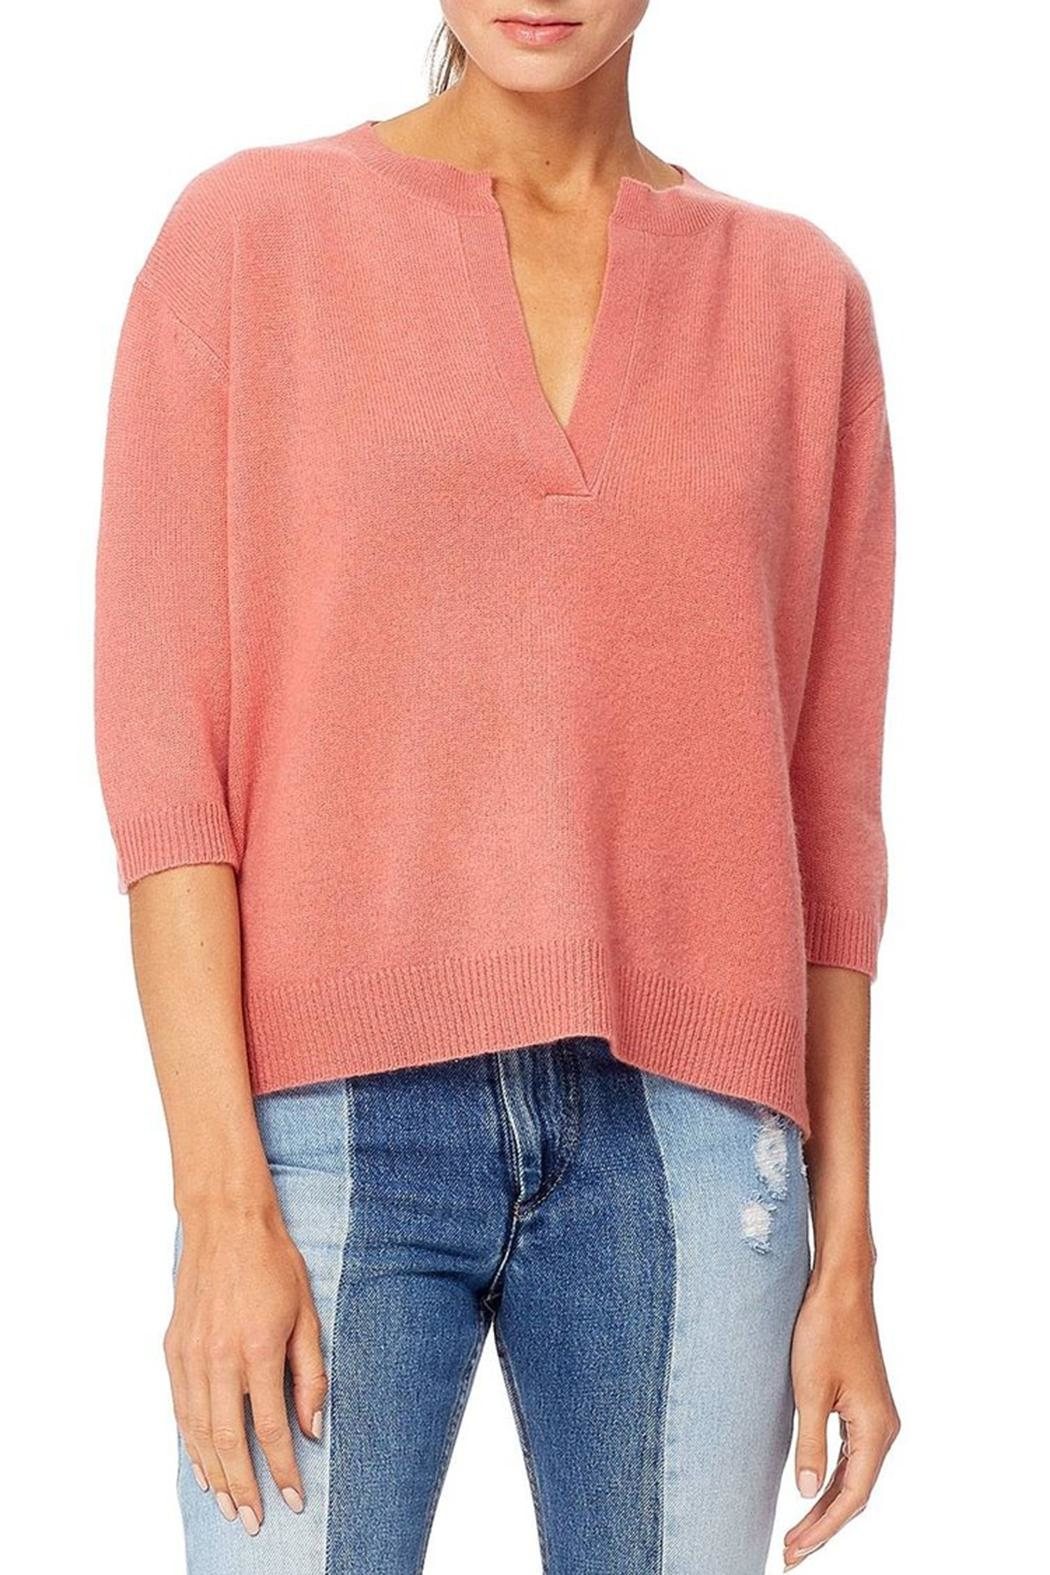 360 Cashmere Anouk Cashmere Sweater - Main Image